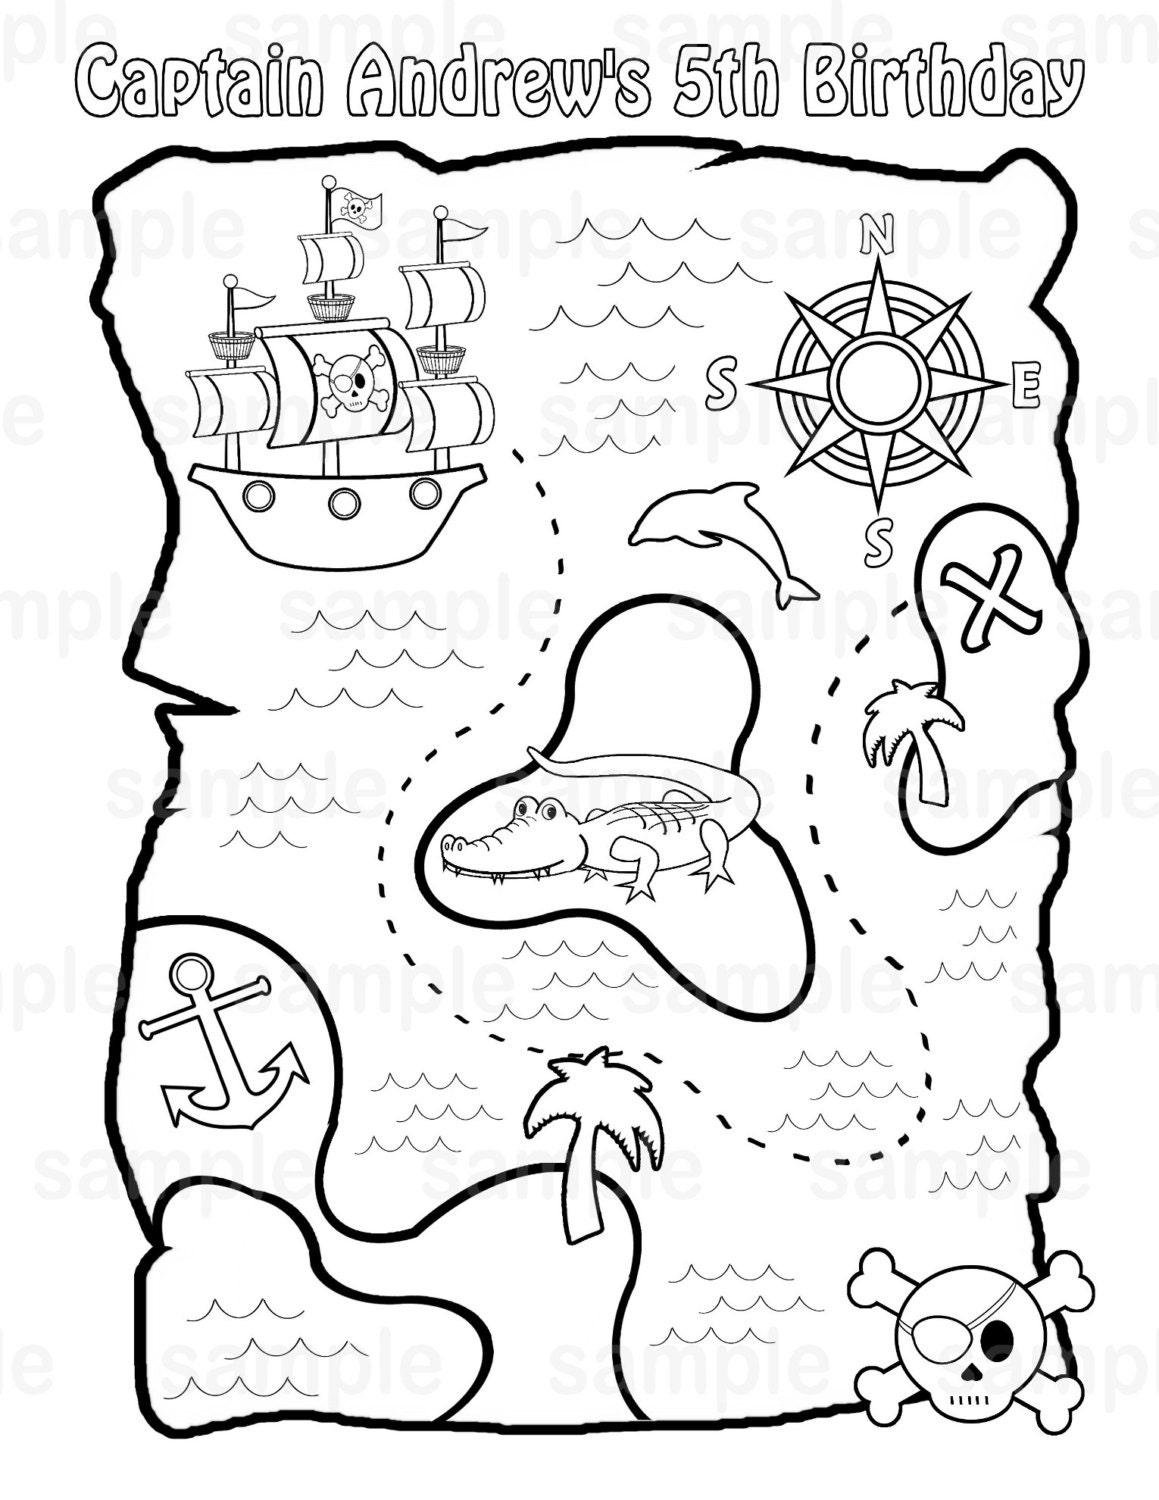 Pirate treasure coloring pages - photo#23